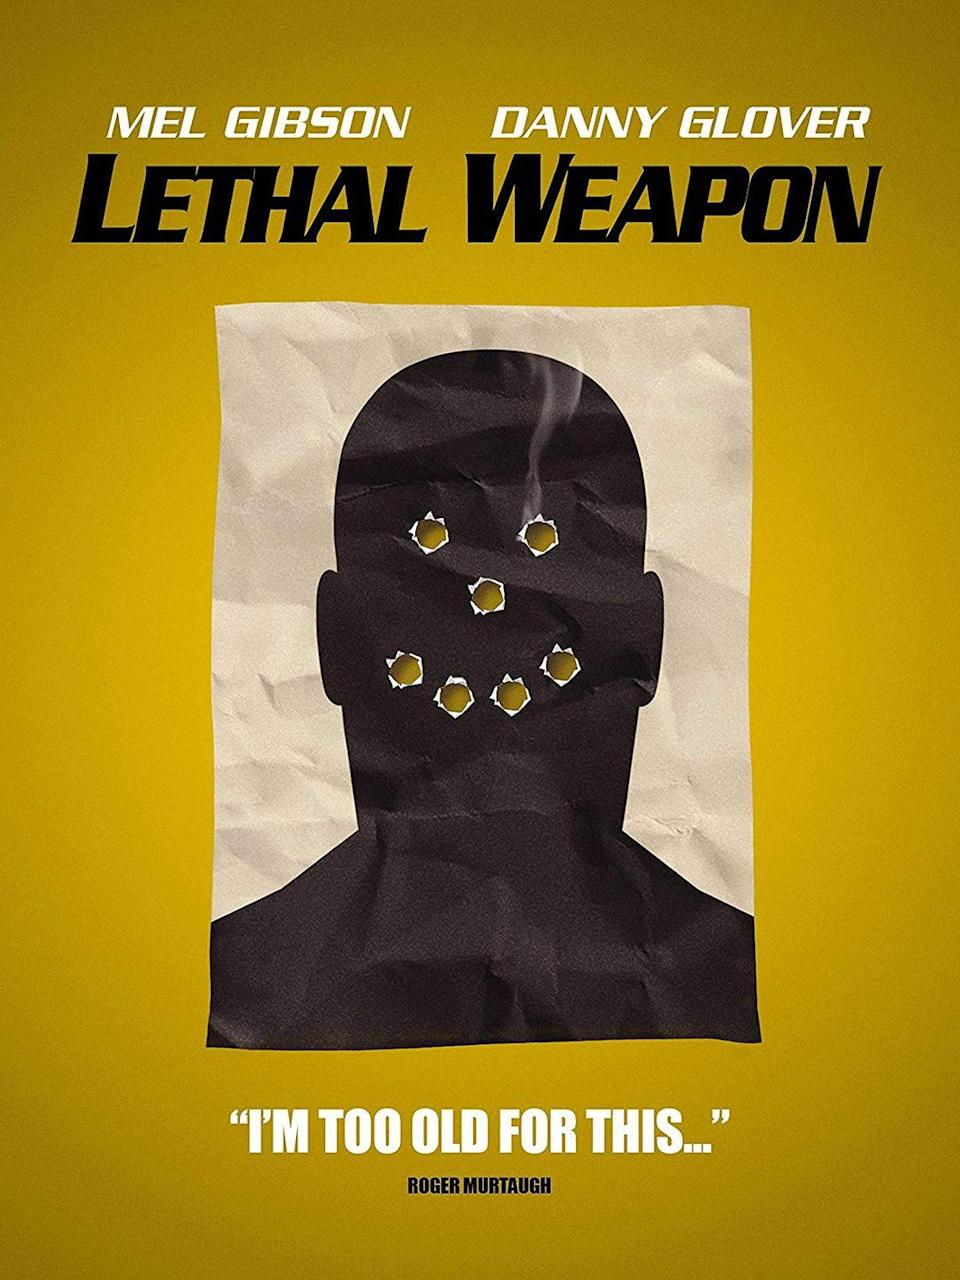 """<p>It's easy to forget that <em>Lethal Weapon</em> takes place during Christmas, but considering it starts with """"Jingle Bell Rock"""" and ends with """"I'll Be Home For Christmas,"""" you should feel free to add this one to your December lineup if you're an action movie fan.</p><p><a class=""""link rapid-noclick-resp"""" href=""""https://www.amazon.com/Lethal-Weapon-Mel-Gibson/dp/B0091X2T9M/?tag=syn-yahoo-20&ascsubtag=%5Bartid%7C10055.g.1315%5Bsrc%7Cyahoo-us"""" rel=""""nofollow noopener"""" target=""""_blank"""" data-ylk=""""slk:WATCH NOW"""">WATCH NOW</a></p>"""